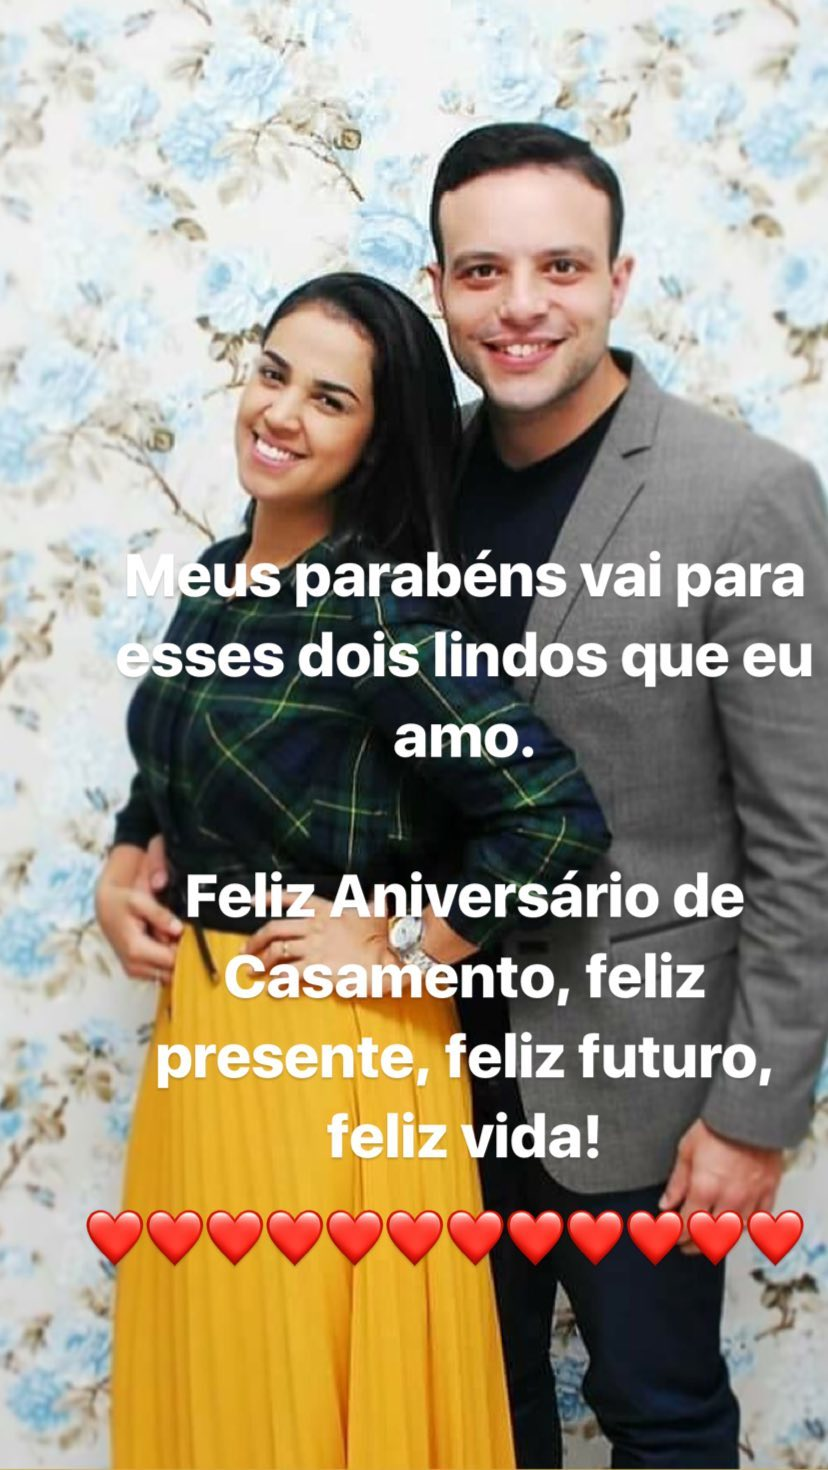 Post da pastora Helena Raquel no Instagram